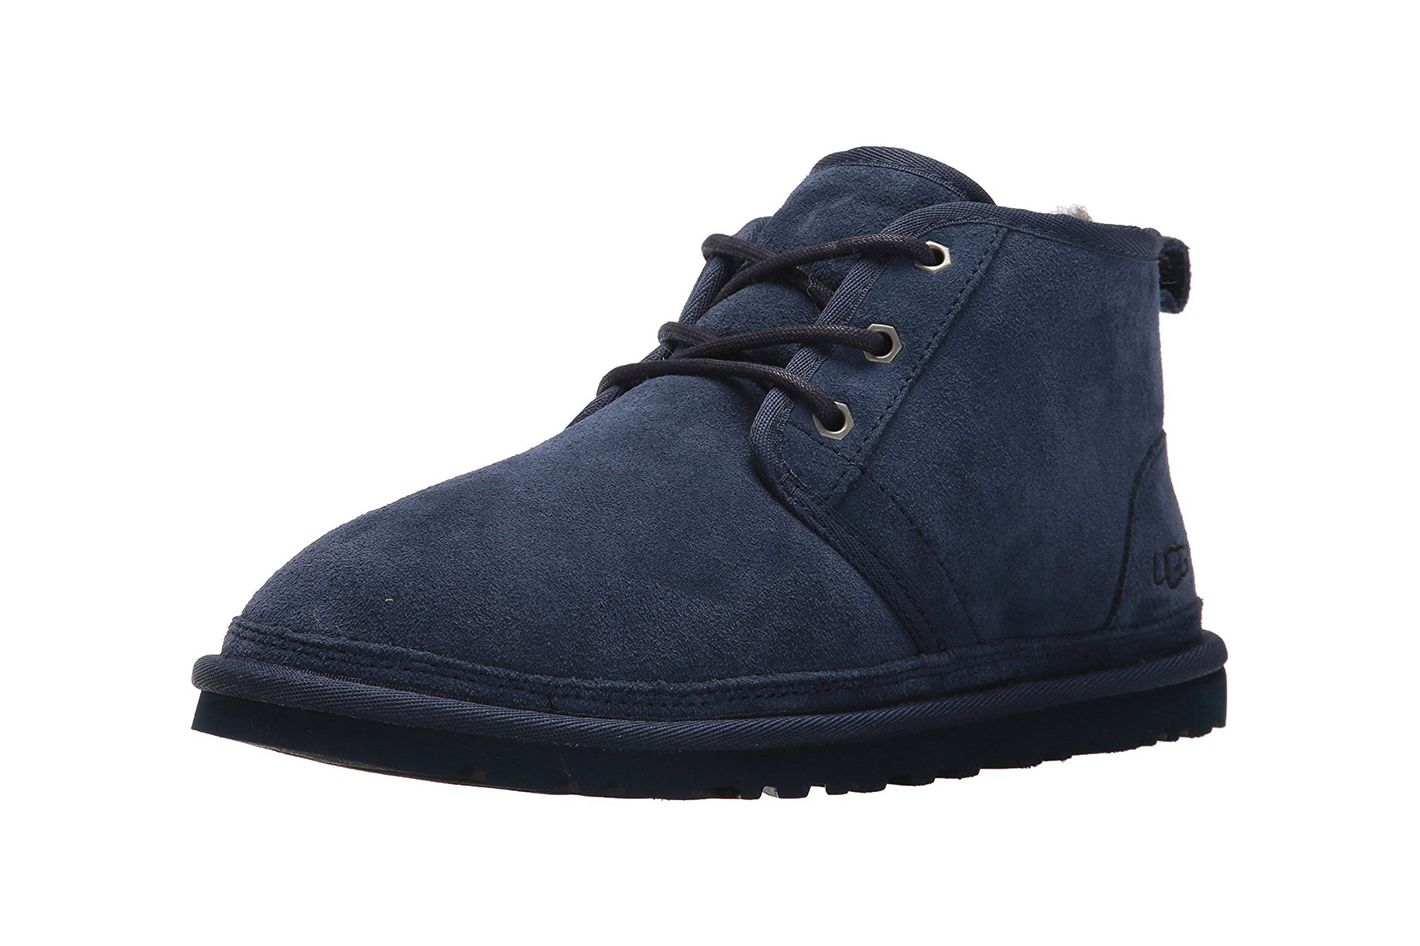 Ugg Men's Neumel Chukka Boot at Amazon